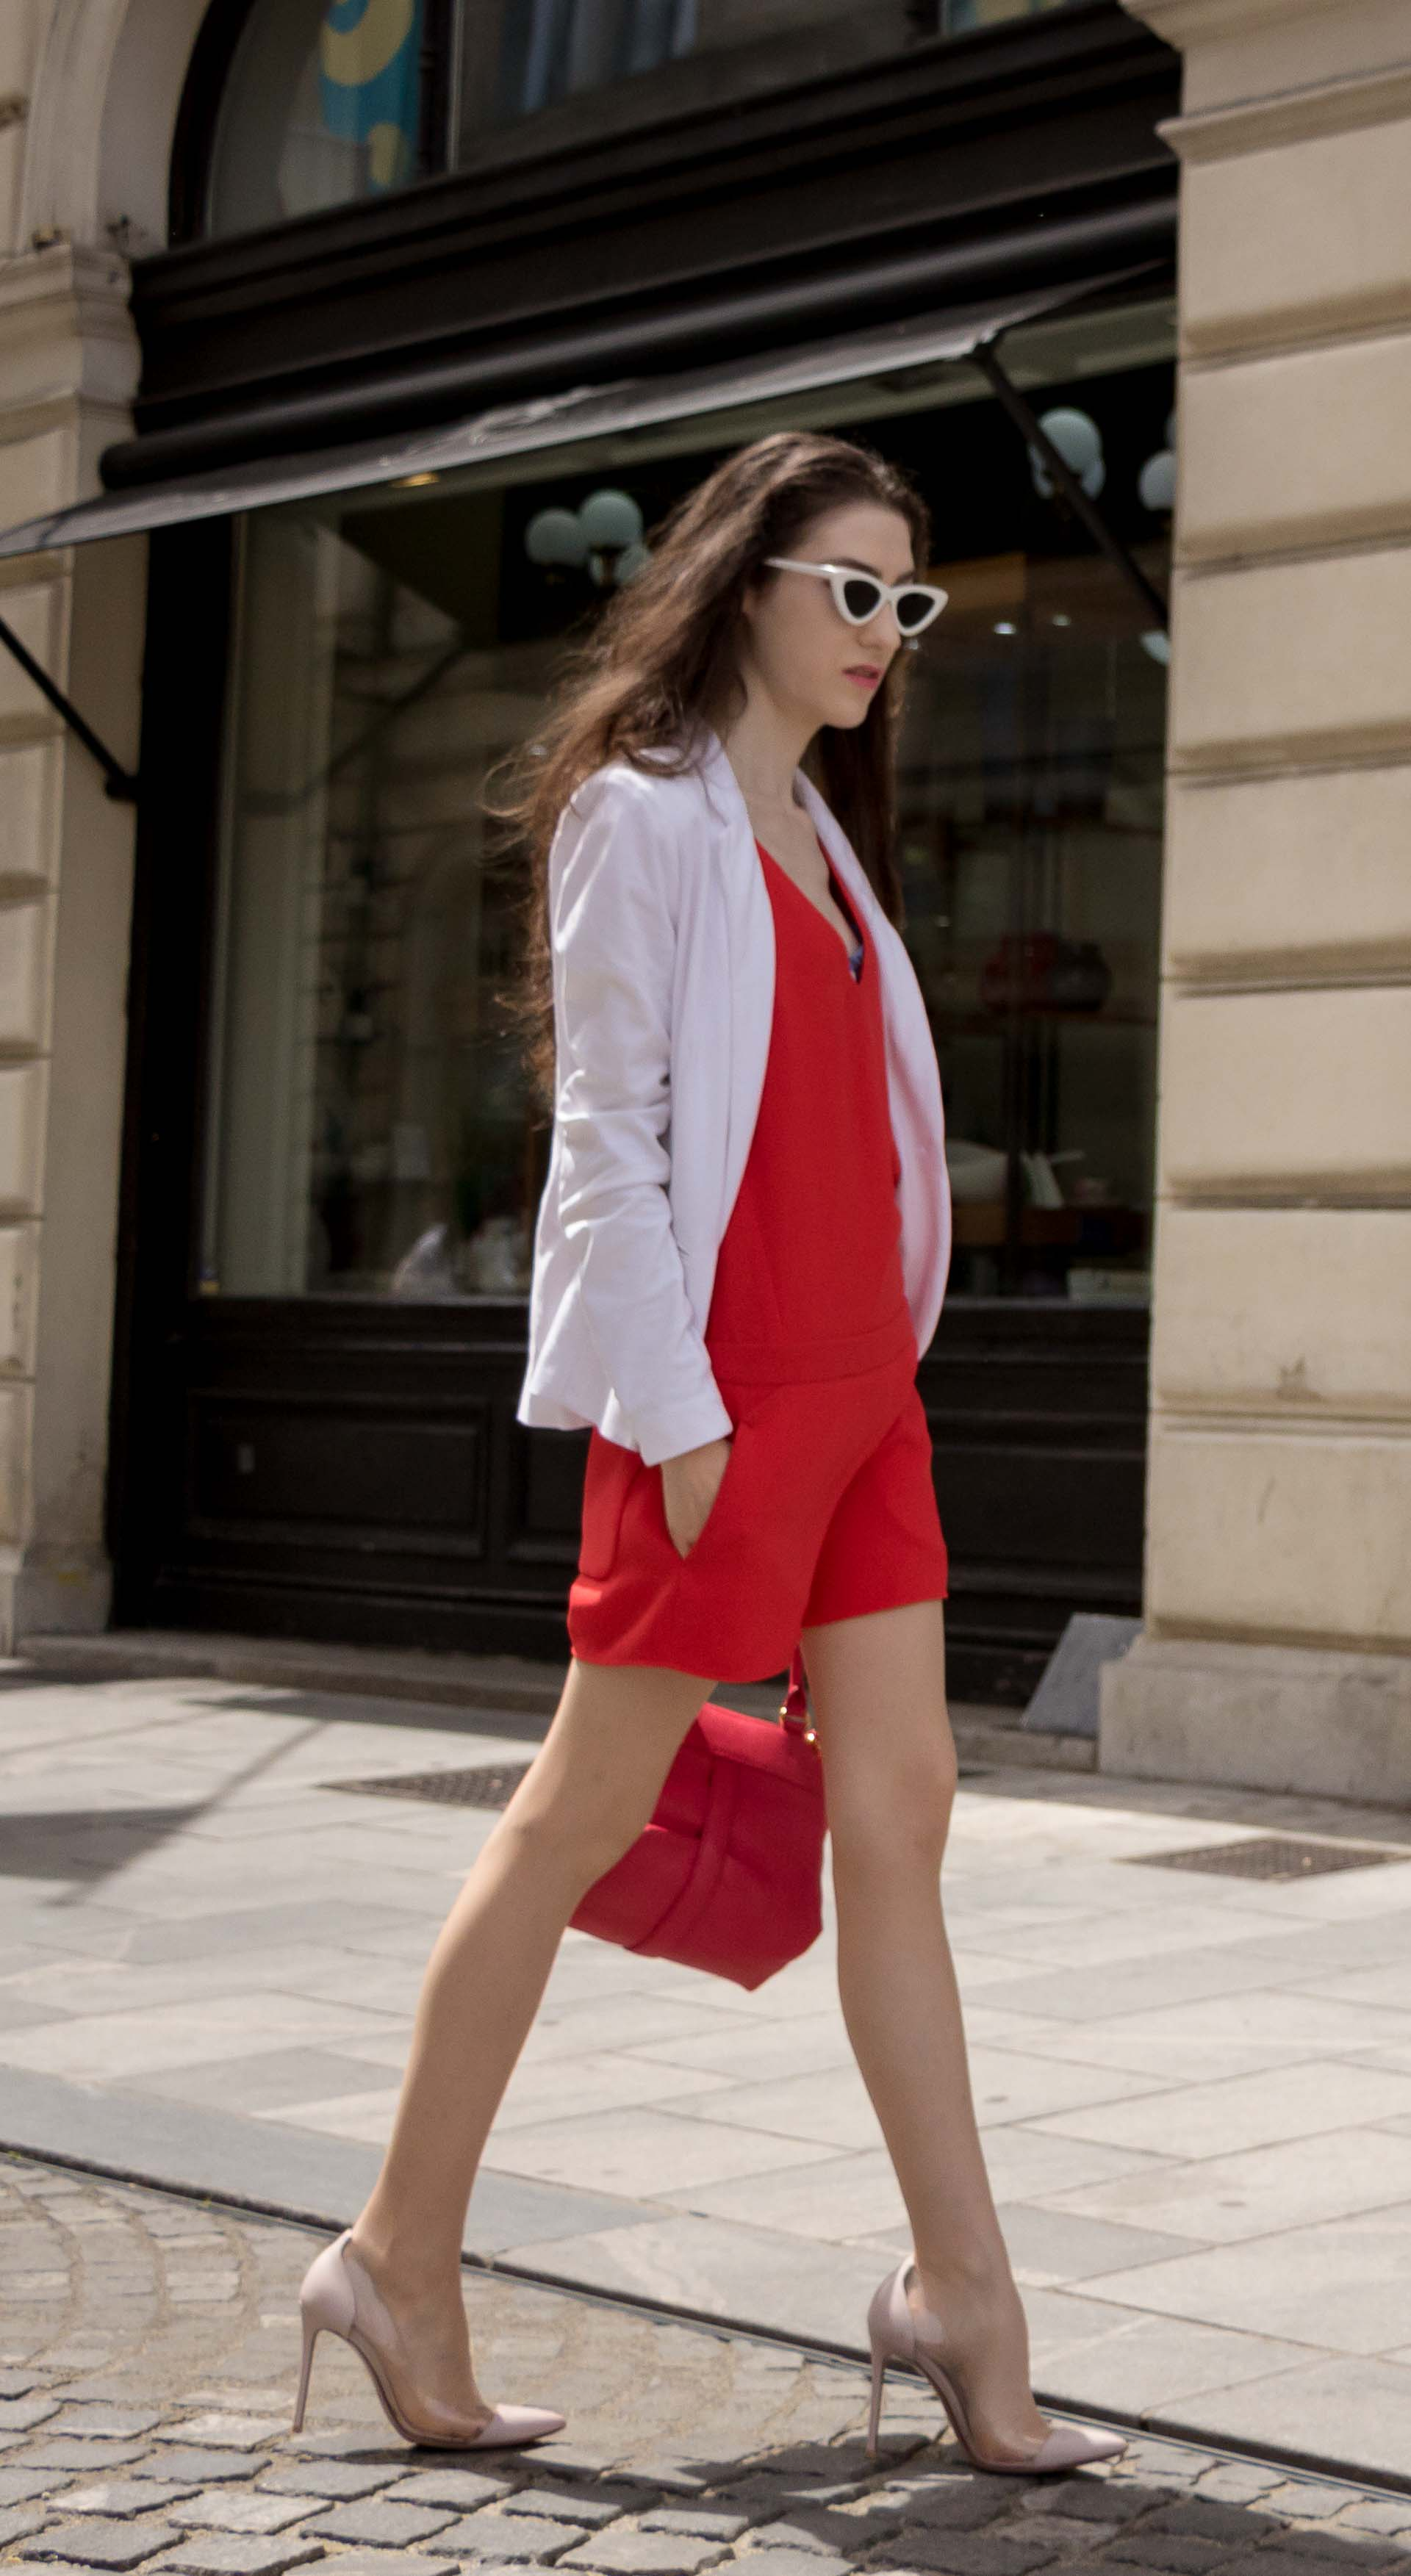 Veronika Lipar Fashion Editor of Brunette from Wall Street dressed in red playsuit, white blazer, Adam Selman x Le Specs white cat eye Lolita sunglasses, pink top handle See by Chloe bag, Gianvito Rossi plexi pumps on the street in Ljubljana